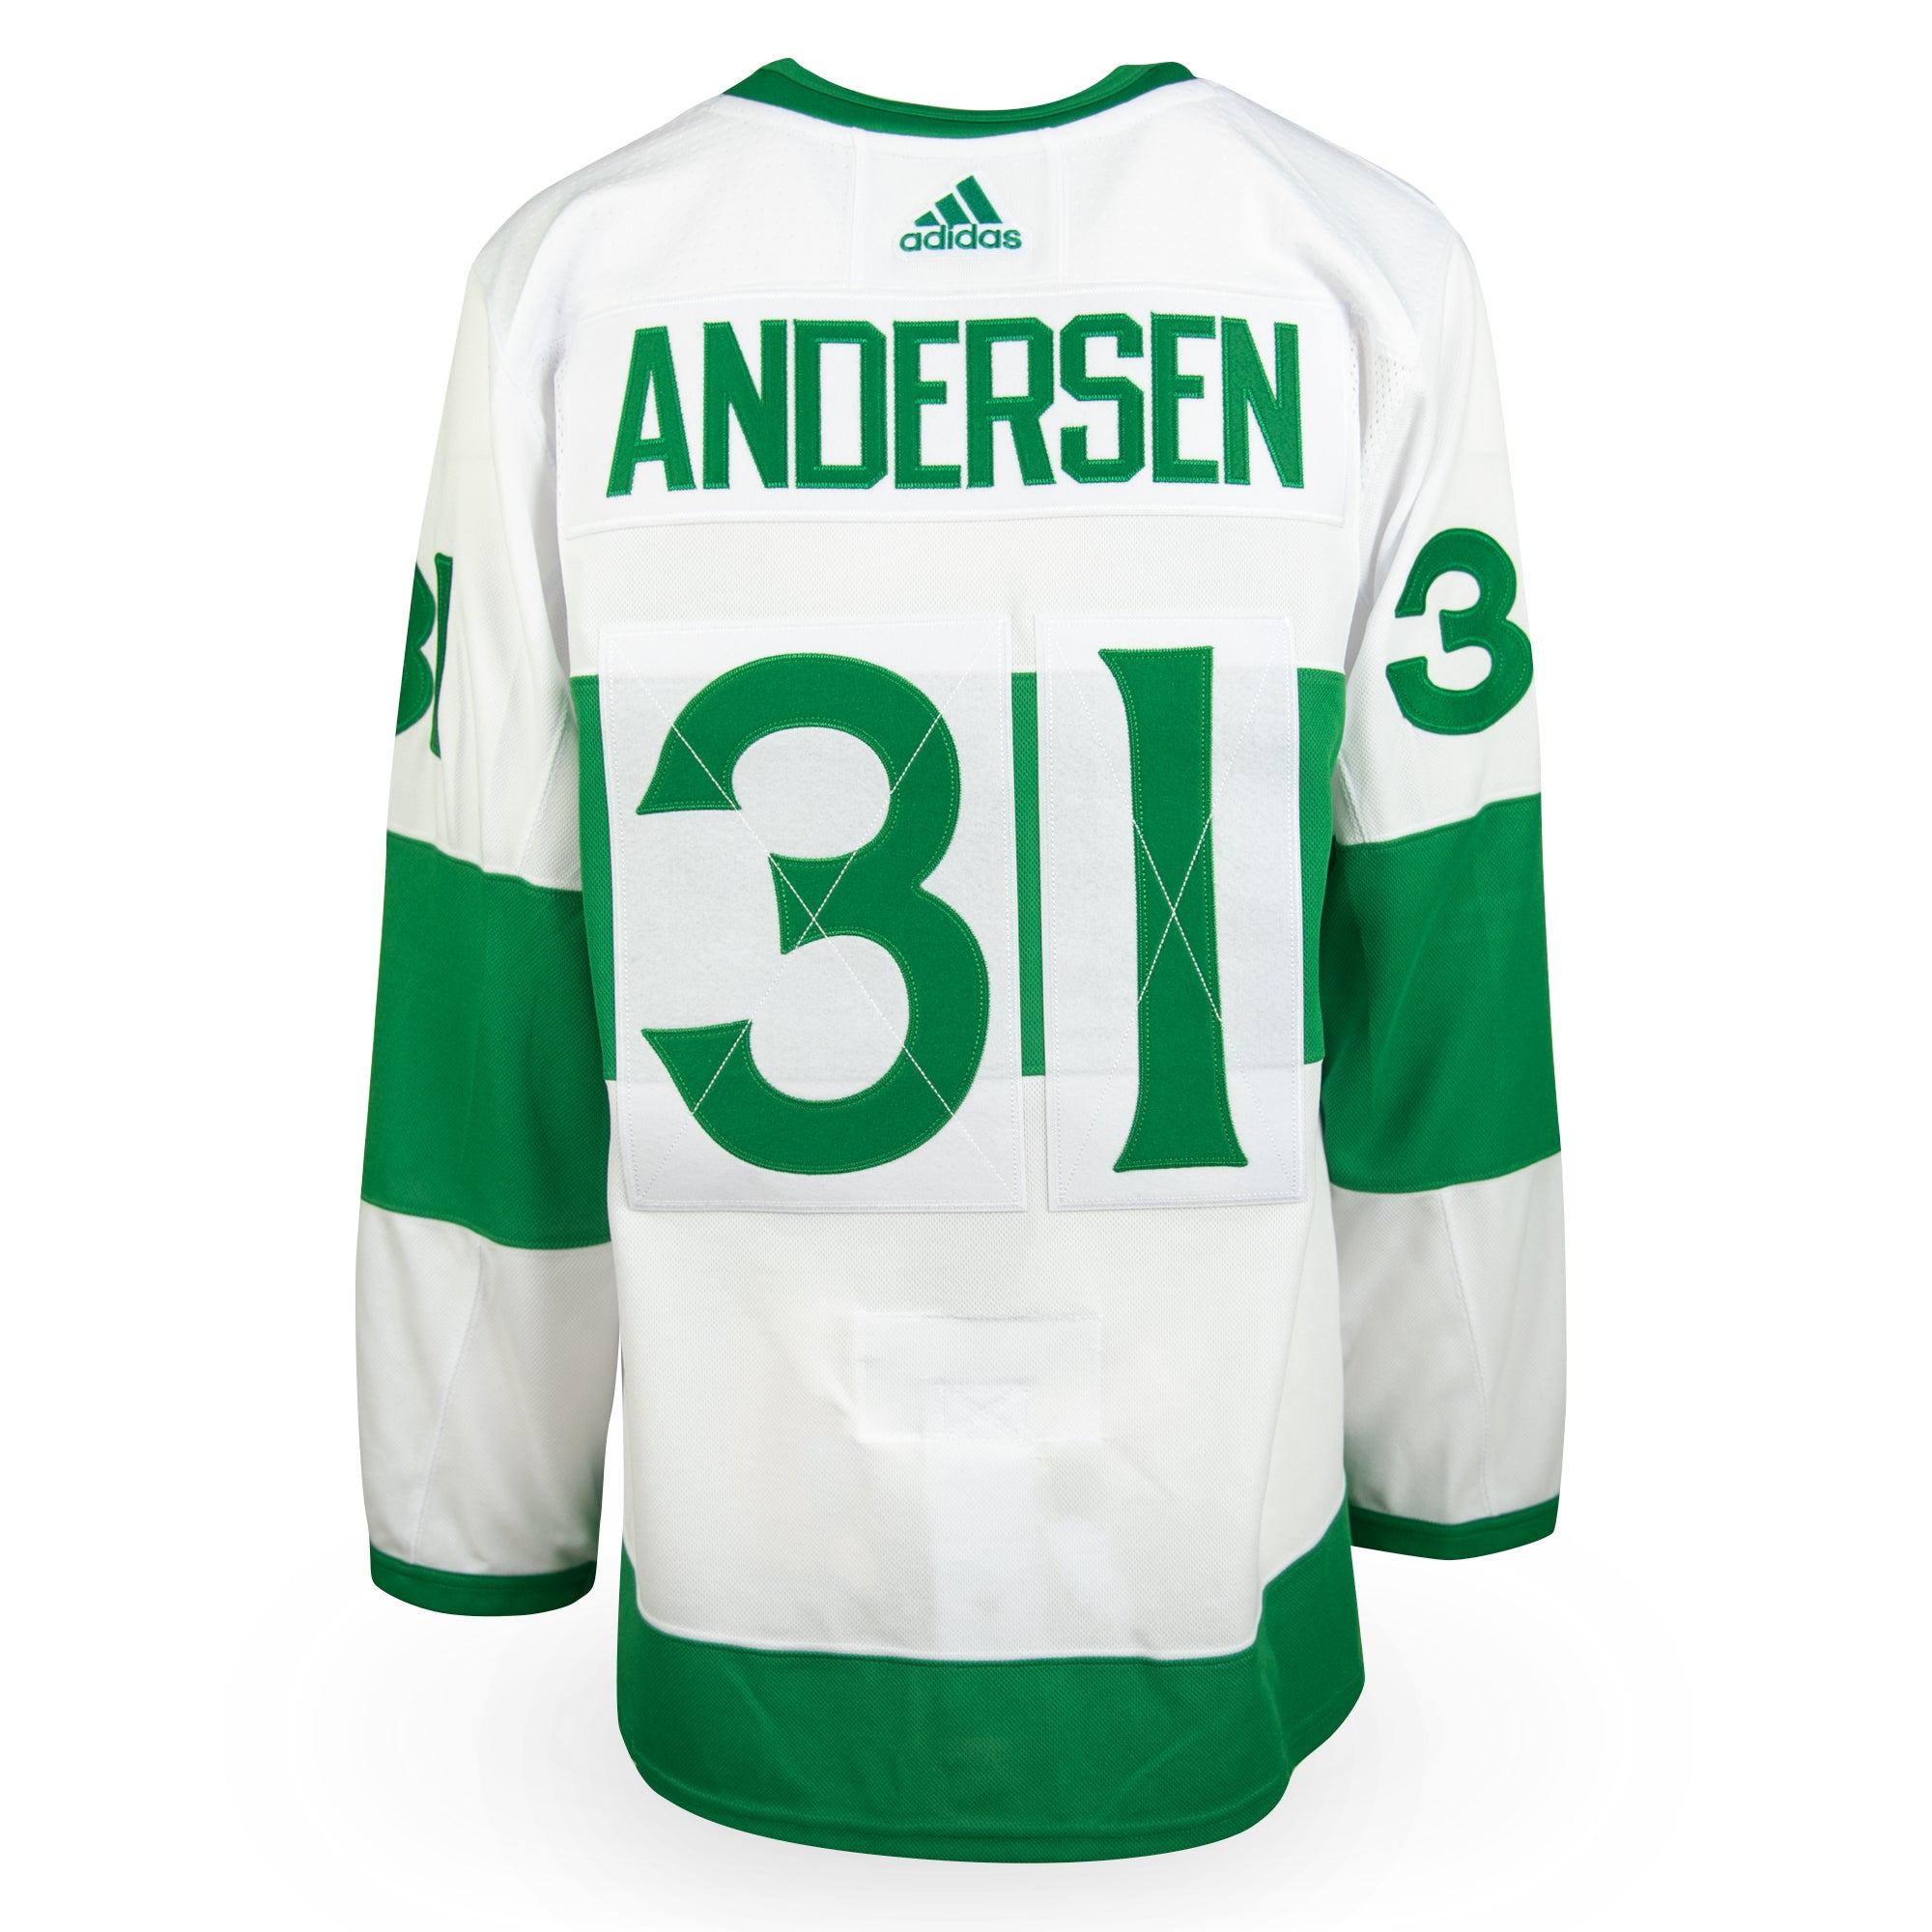 St. Pats Adidas Men s Authentic Jersey - ANDERSEN – shop.realsports aa9c85525